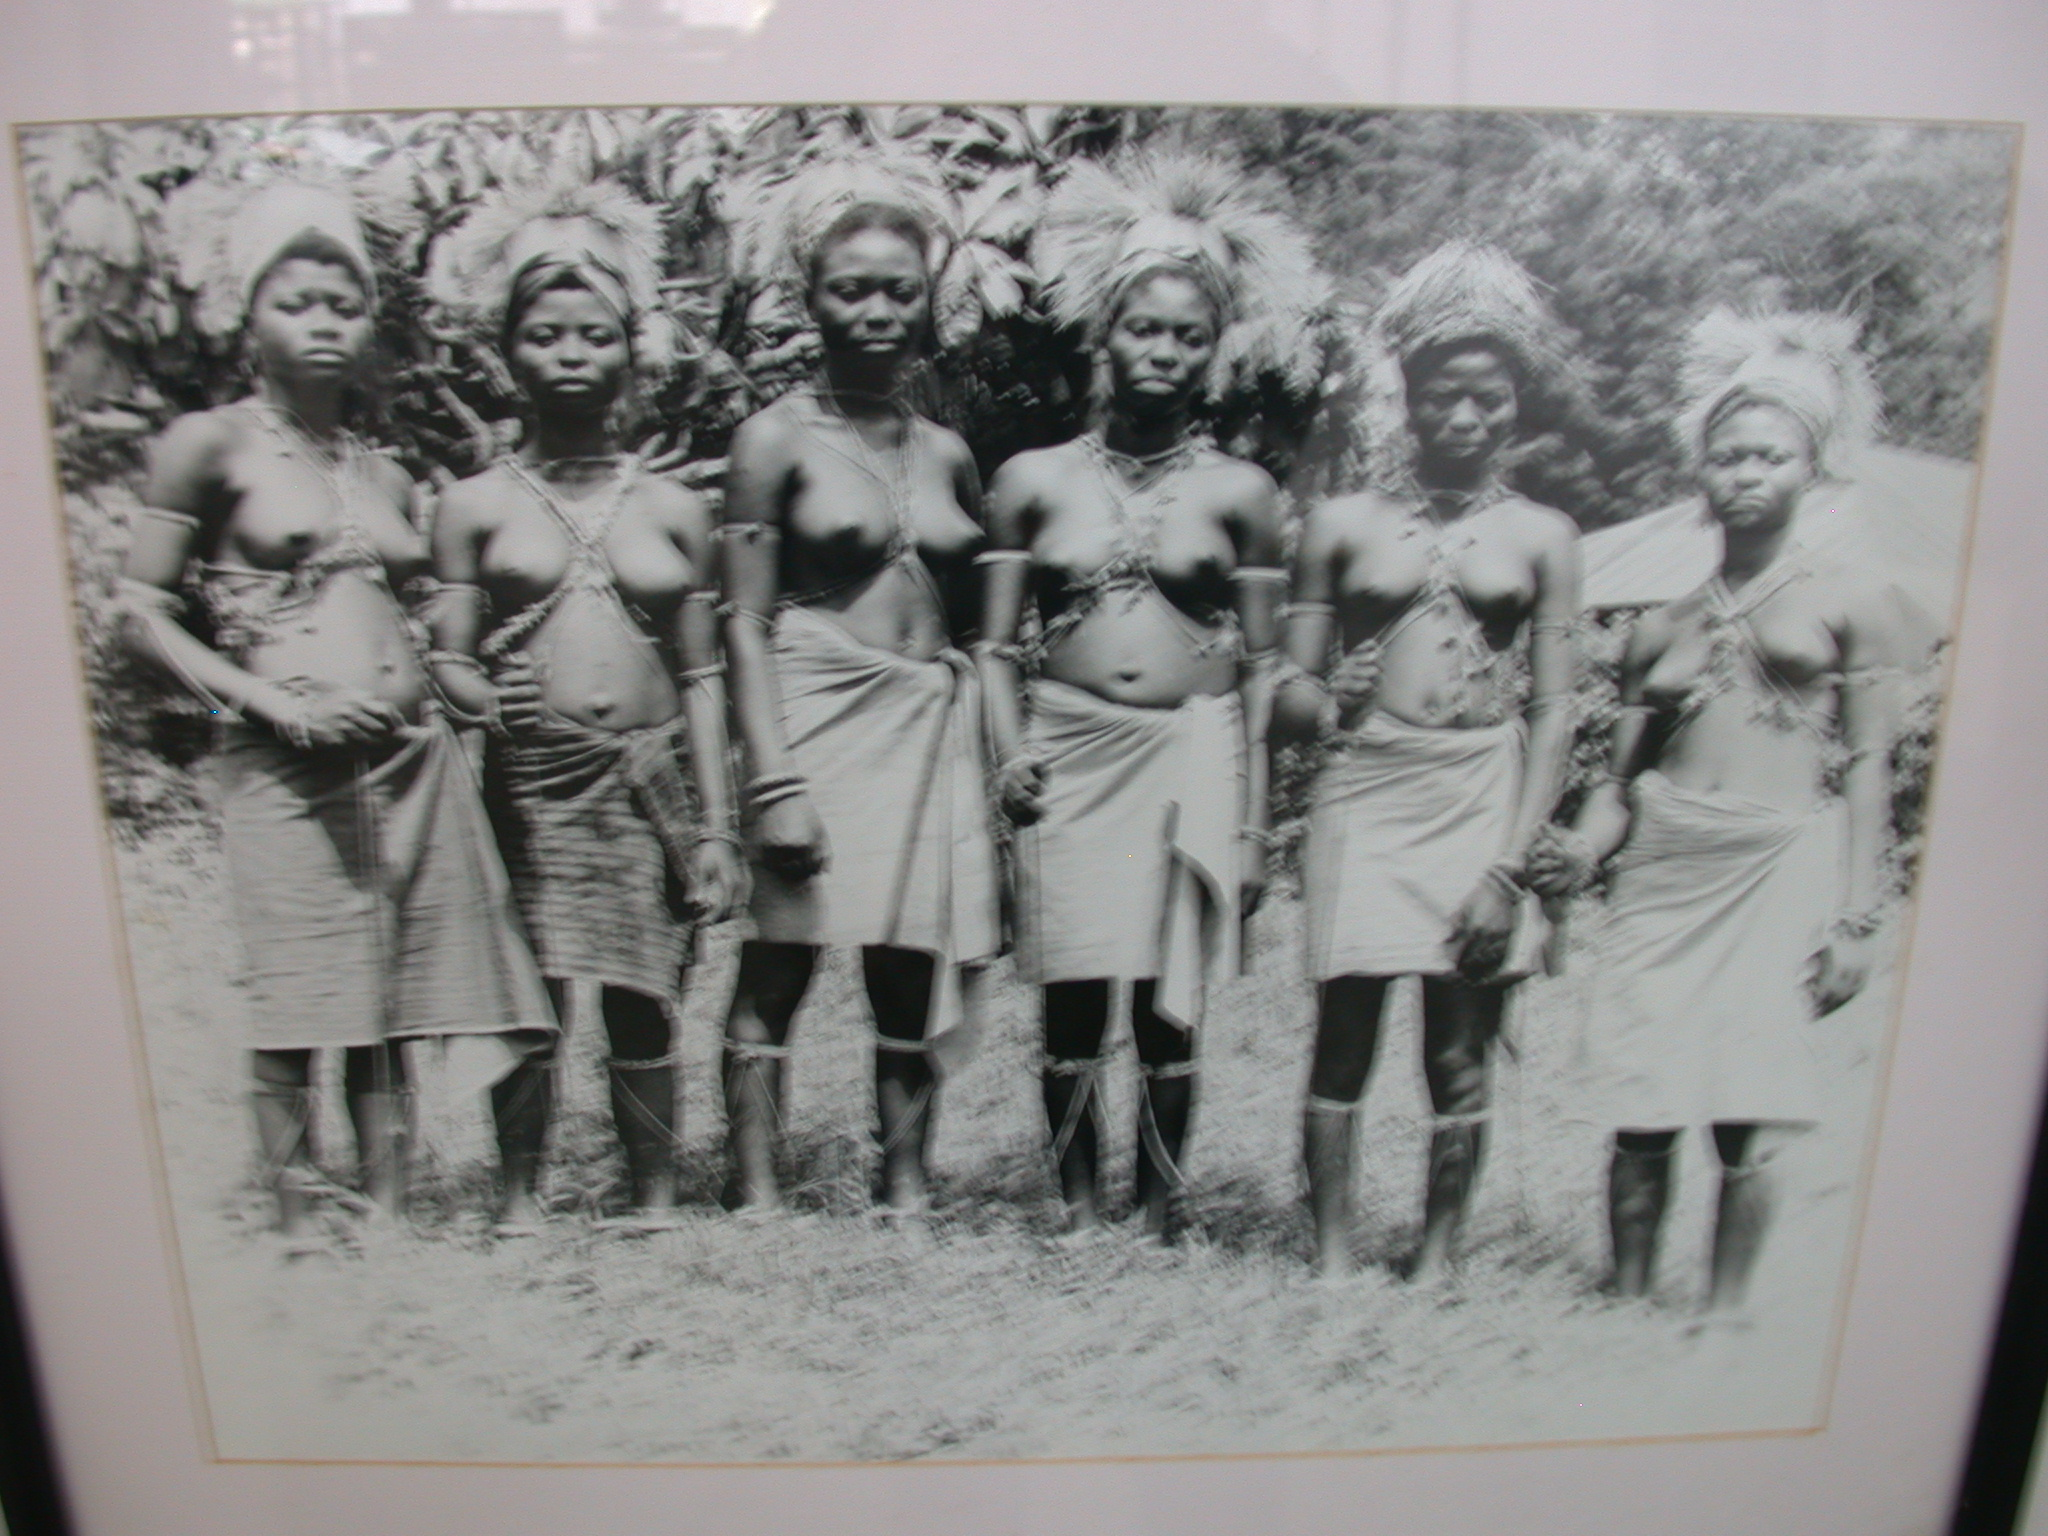 Picture of Girls Initiated Into Bakafor Rite, National Museum, Accra, Ghana